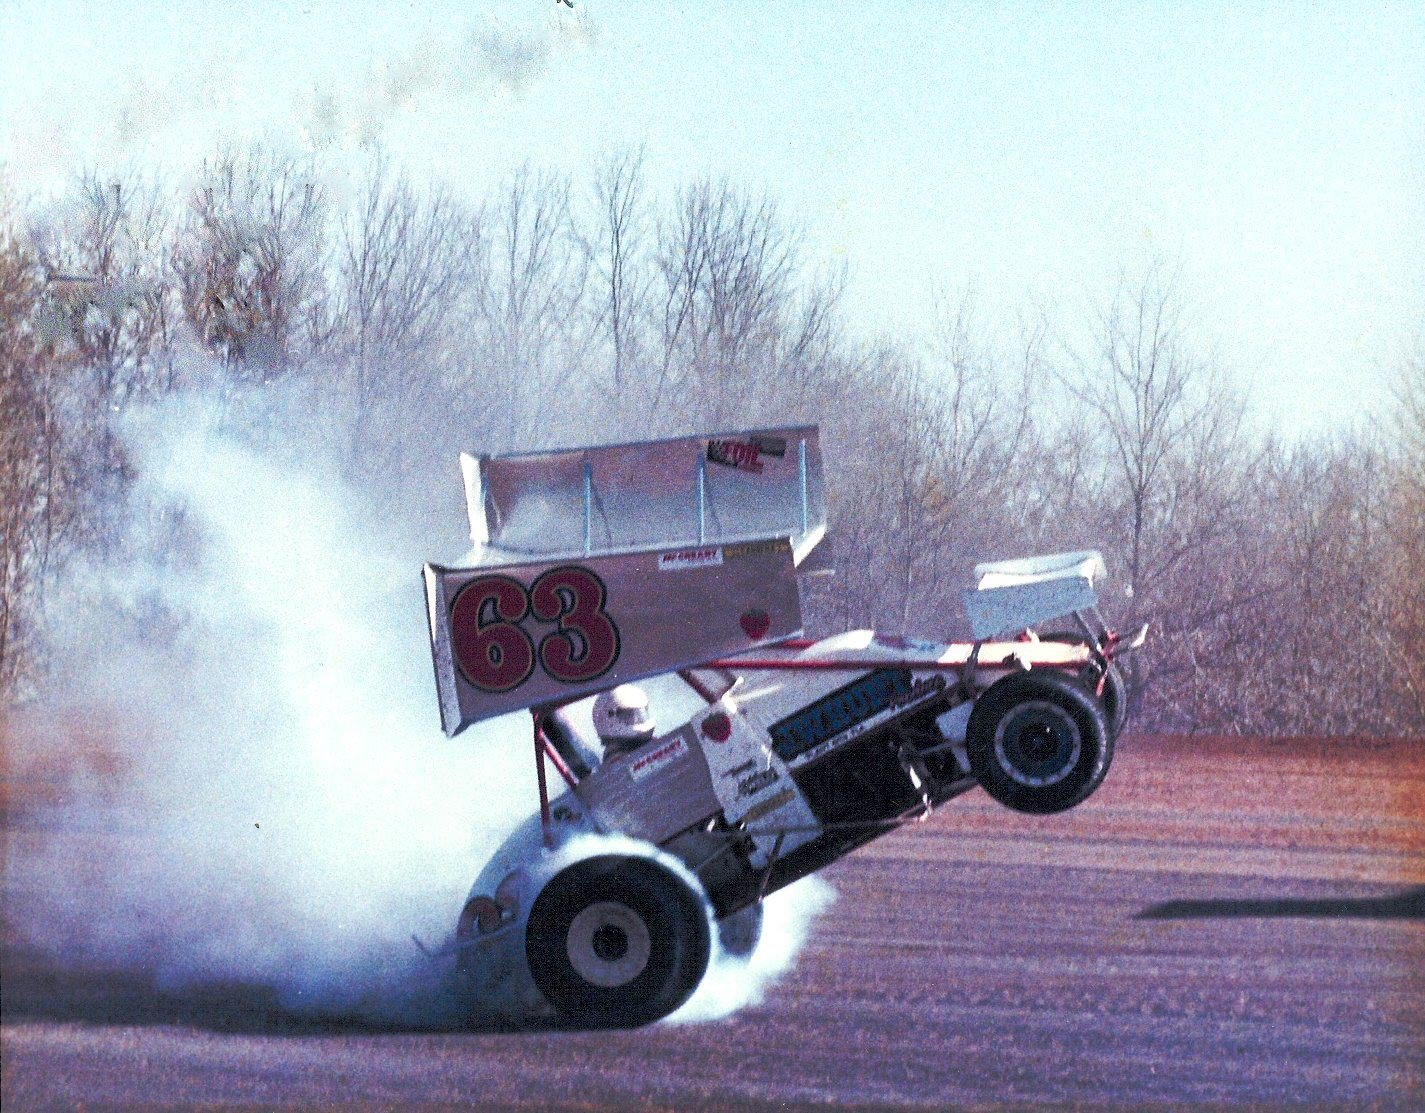 Sprint Car Jack : Vintage sprint cars on twitter quot happy birthday to the one